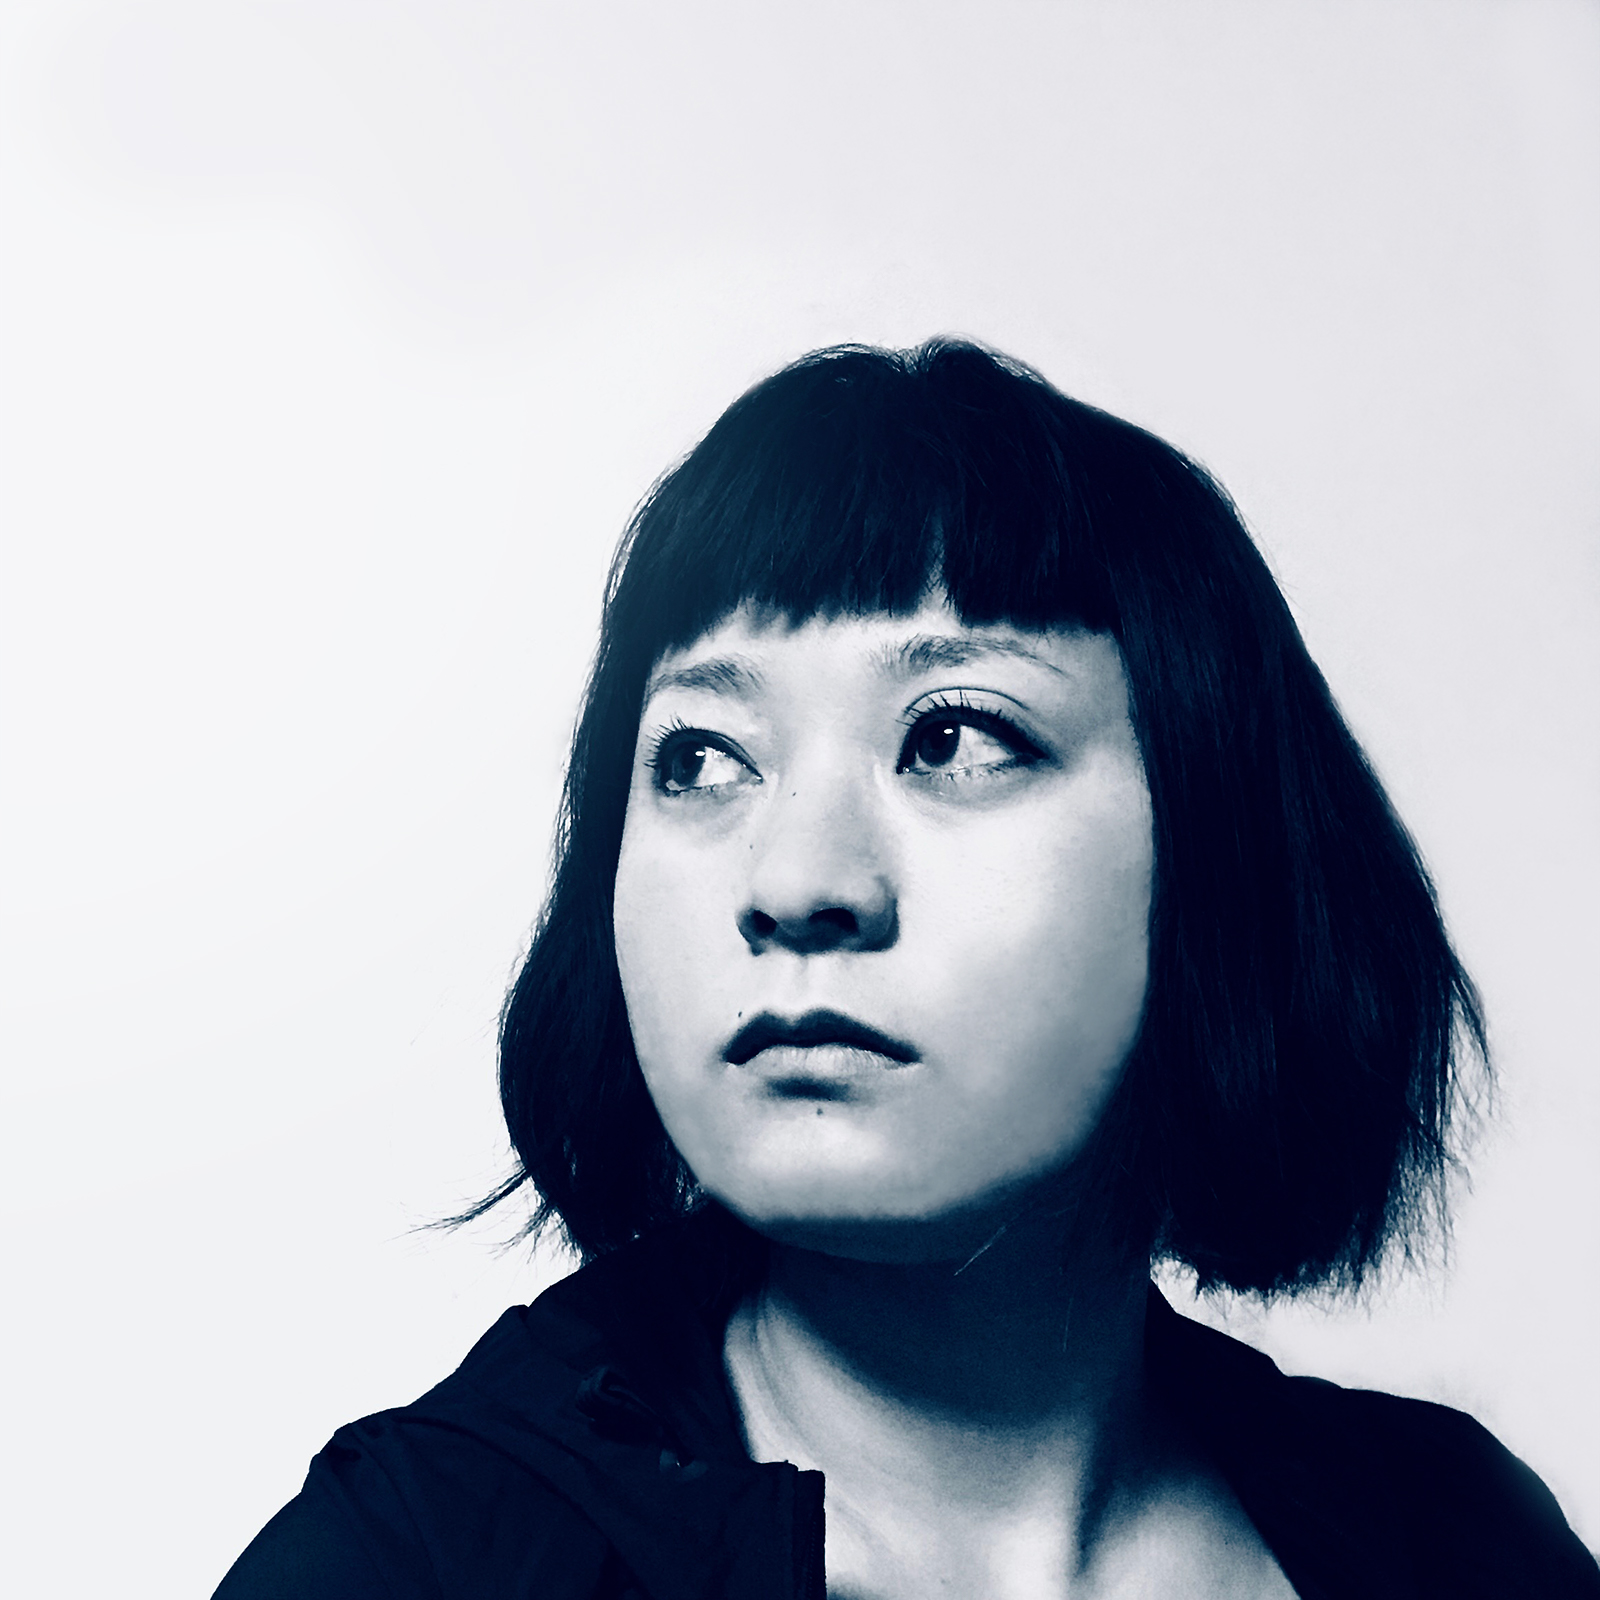 Hello there! - I am a graphic designer who was born and raised in Tokyo and am currently based in Brooklyn, NY. I am a positive, nice, and drama-free human being who can find the most joy in good cup of coffee, well crafted cocktail, wholesome food and furry friends. I also love podcasts and am always open to find out what people are listening to these days.